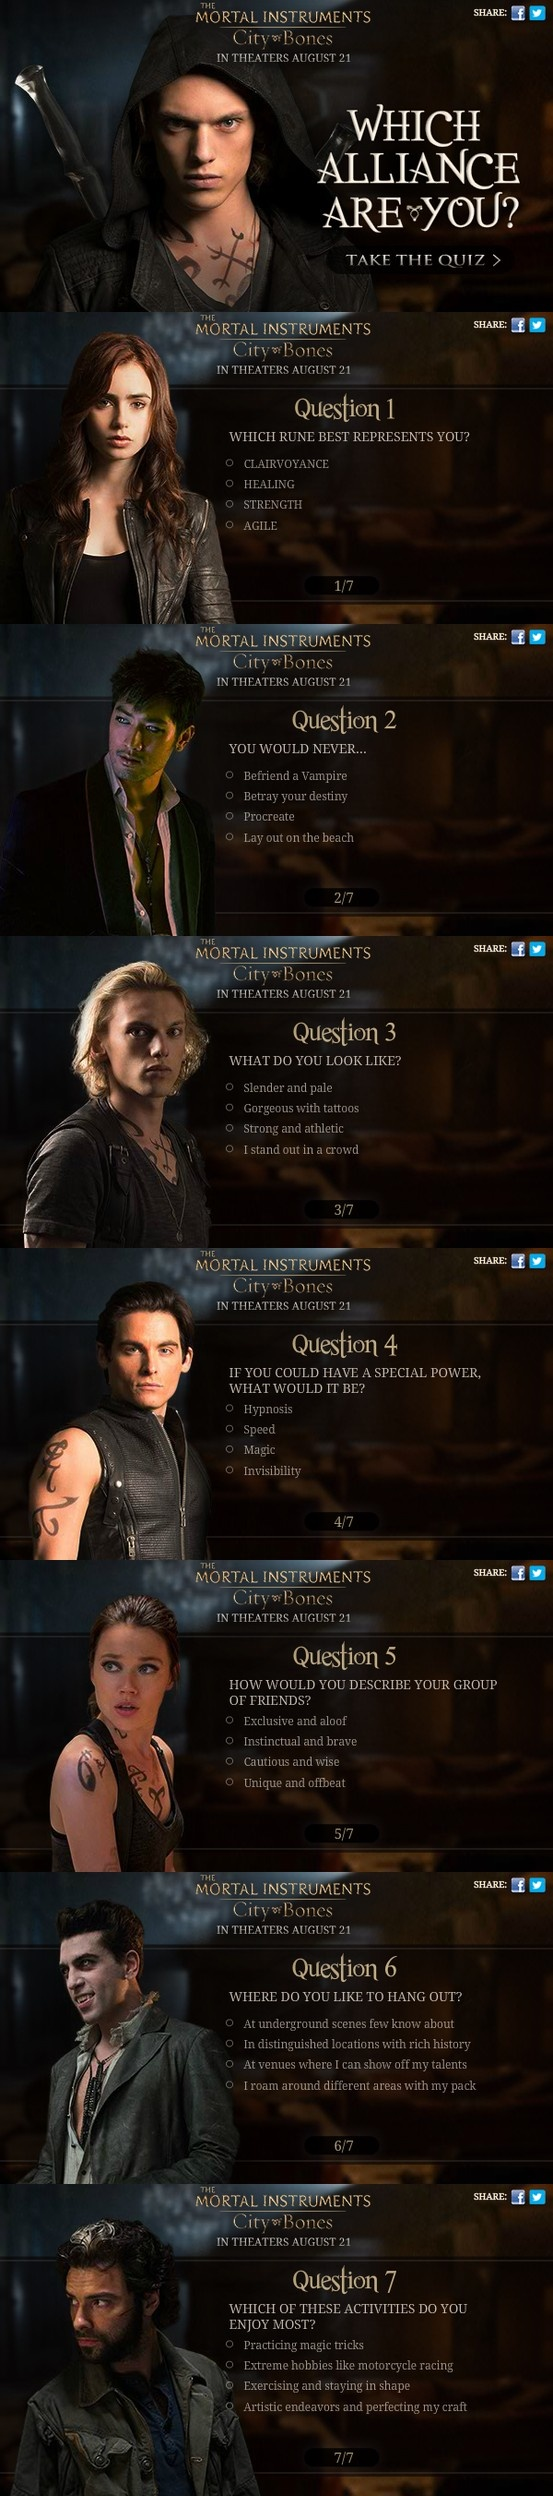 New interactive Alliance Quiz from Sony Pictures with some new character shots for The Mortal Instruments: City of Bones (click on the picture to take the quiz) P.s. simple quest for everyone) Why did Bill die?